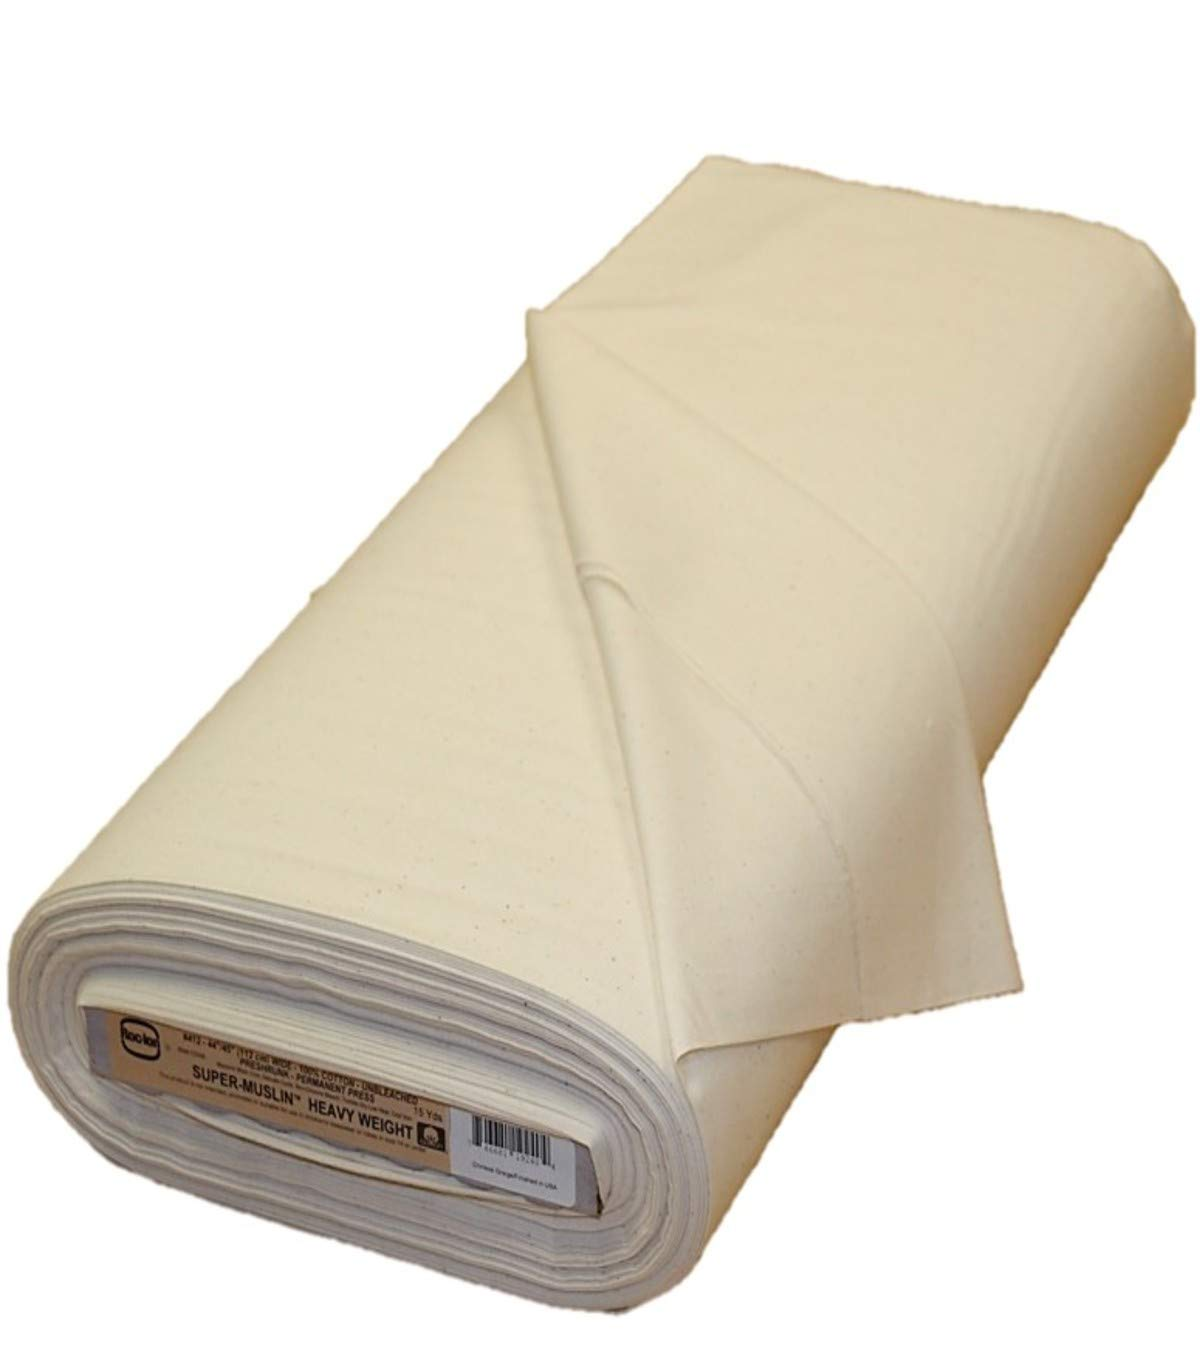 Rockland 92 by 76 Count Muslin, 44/45-Inch, Unbleached/Natural by Rockland (Image #1)